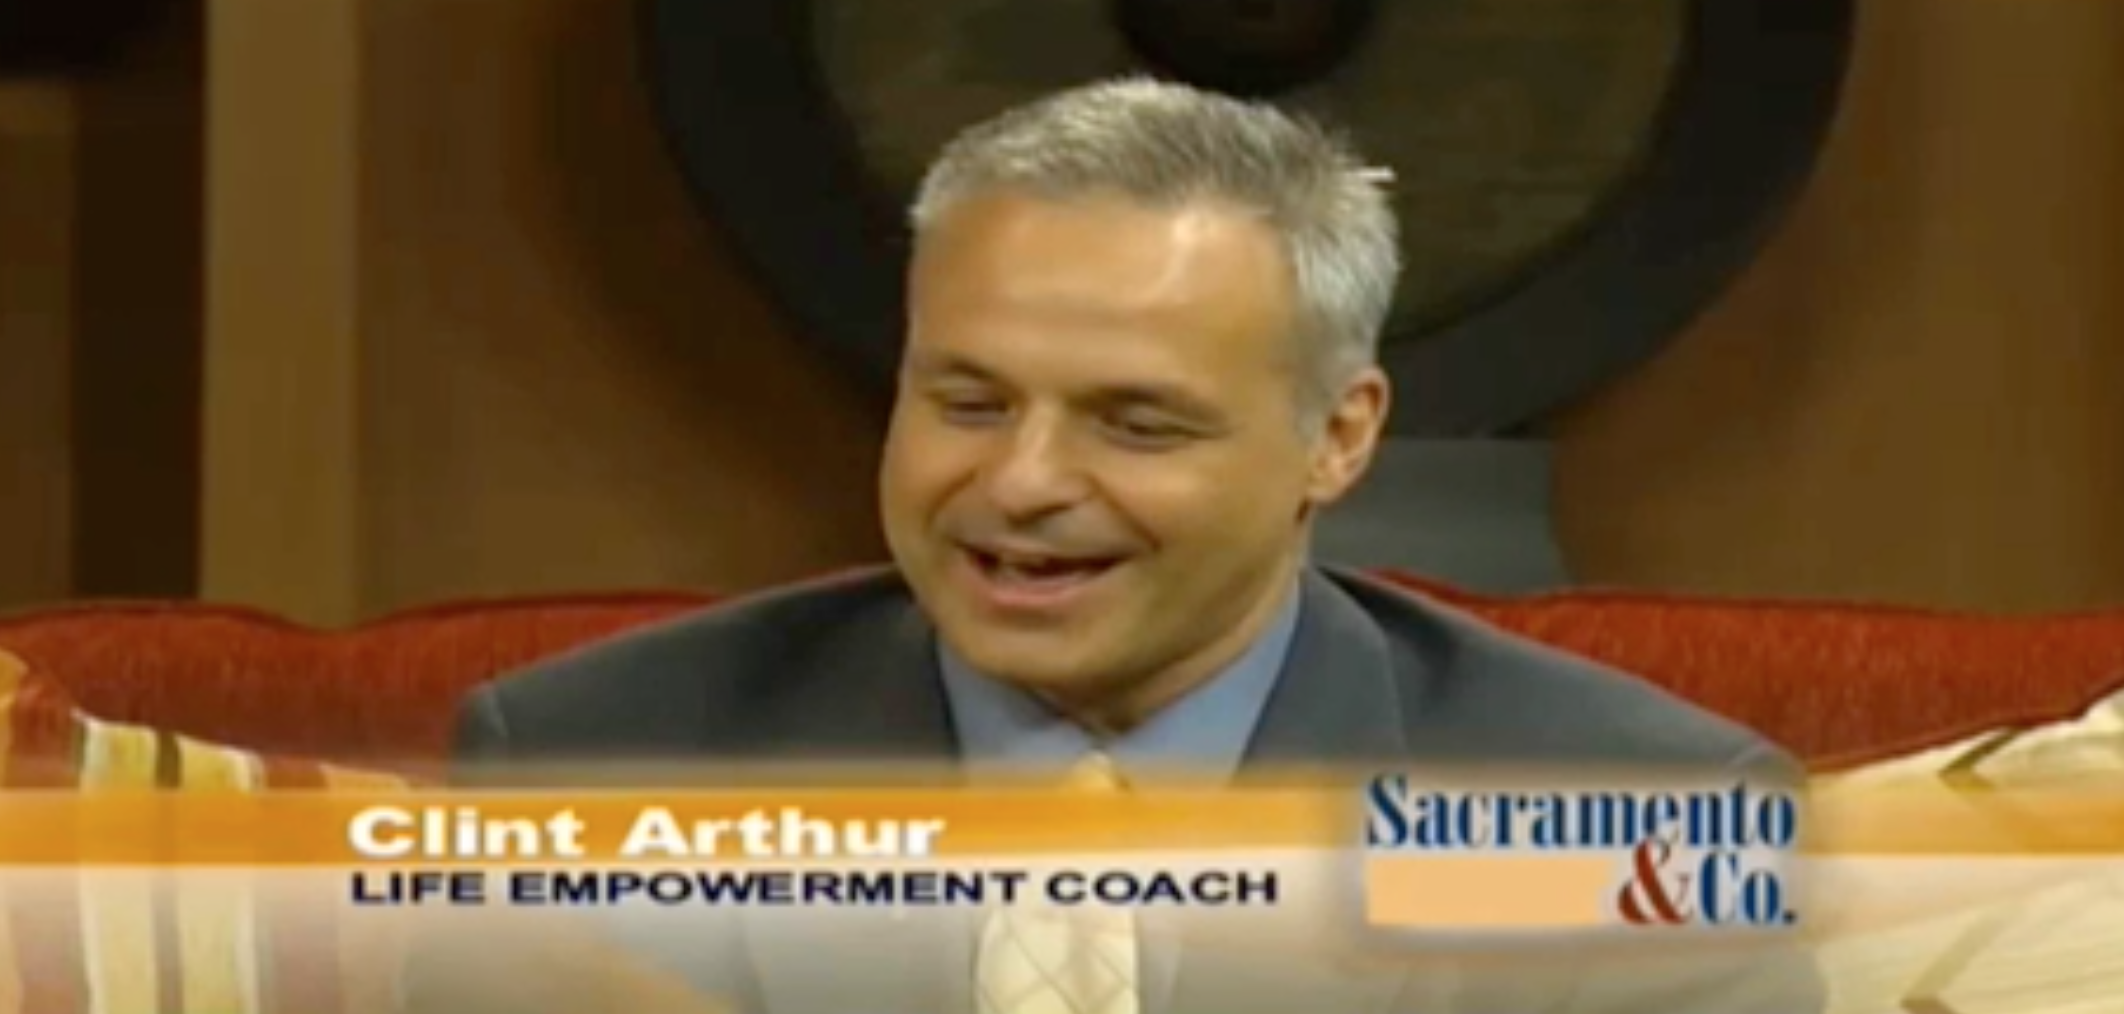 Clint Arthur on ABC TV Sacramento